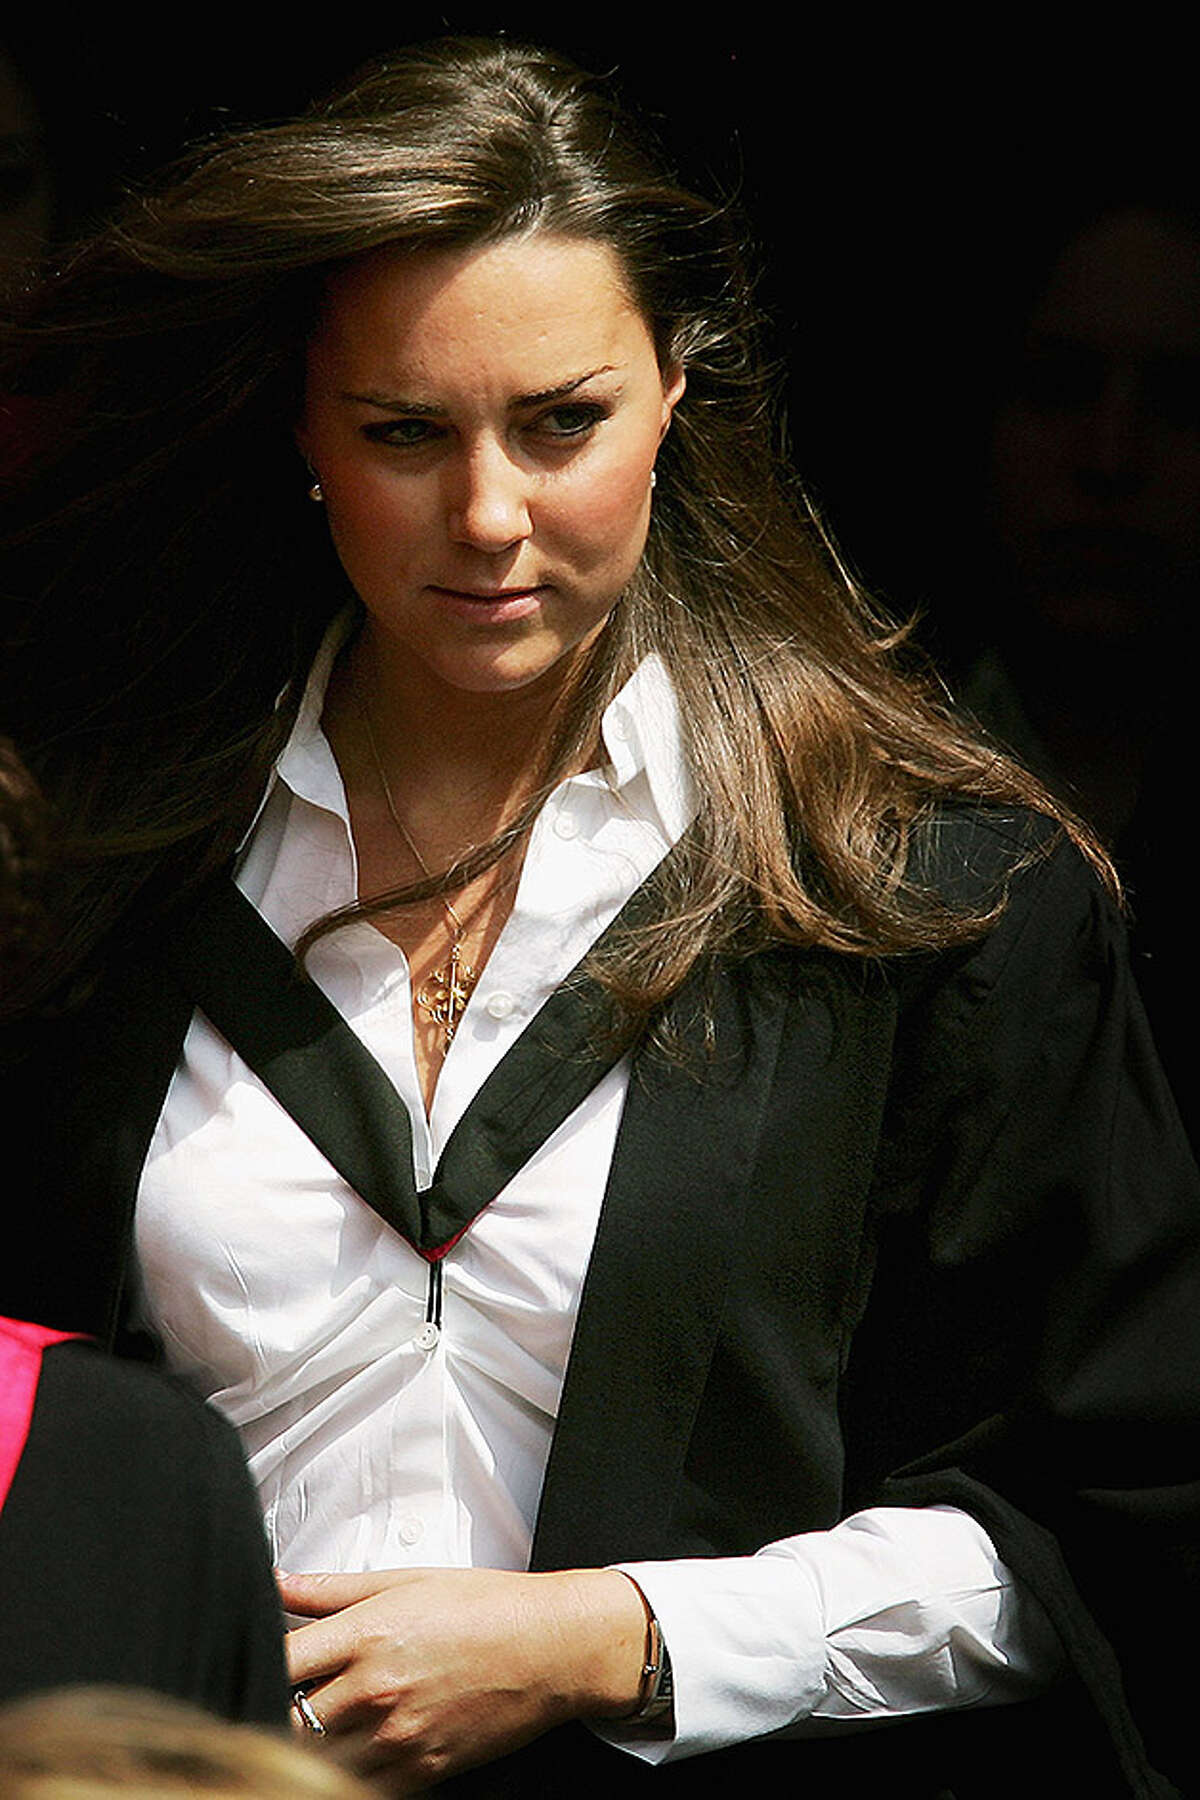 ST ANDREWS, UNITED KINGDOM - JUNE 23: Kate Middleton leaves Younger Hall after her graduation ceremony, June 23, 2005 in St Andrews, Scotland. The Prince, who earnt a 2:1 class Ma in Geography will lose the special protection set up to prevent the media from trailing him whilst he was in full-time education. William will be conducting his first solo official engagements in New Zealand over the next few months which will include ceremonies marking the anniversary of the end of World War II. (Photo by Bruno Vincent/Getty Images) *** Local Caption *** Kate Middleton